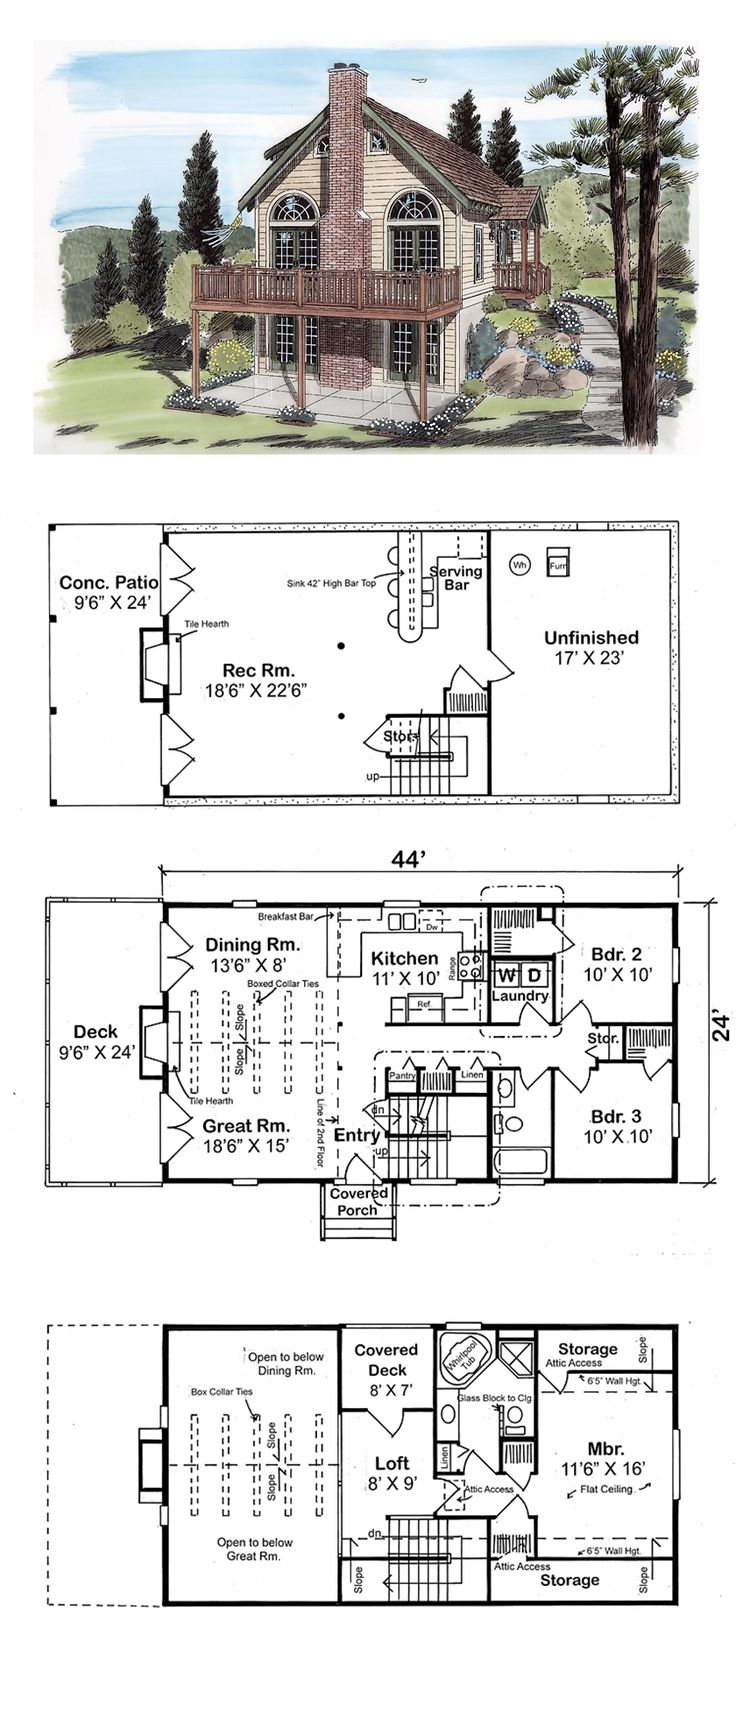 49 best luxury house plans images on pinterest luxury house narrow lot house plan 24705 total living area 1562 sq ft